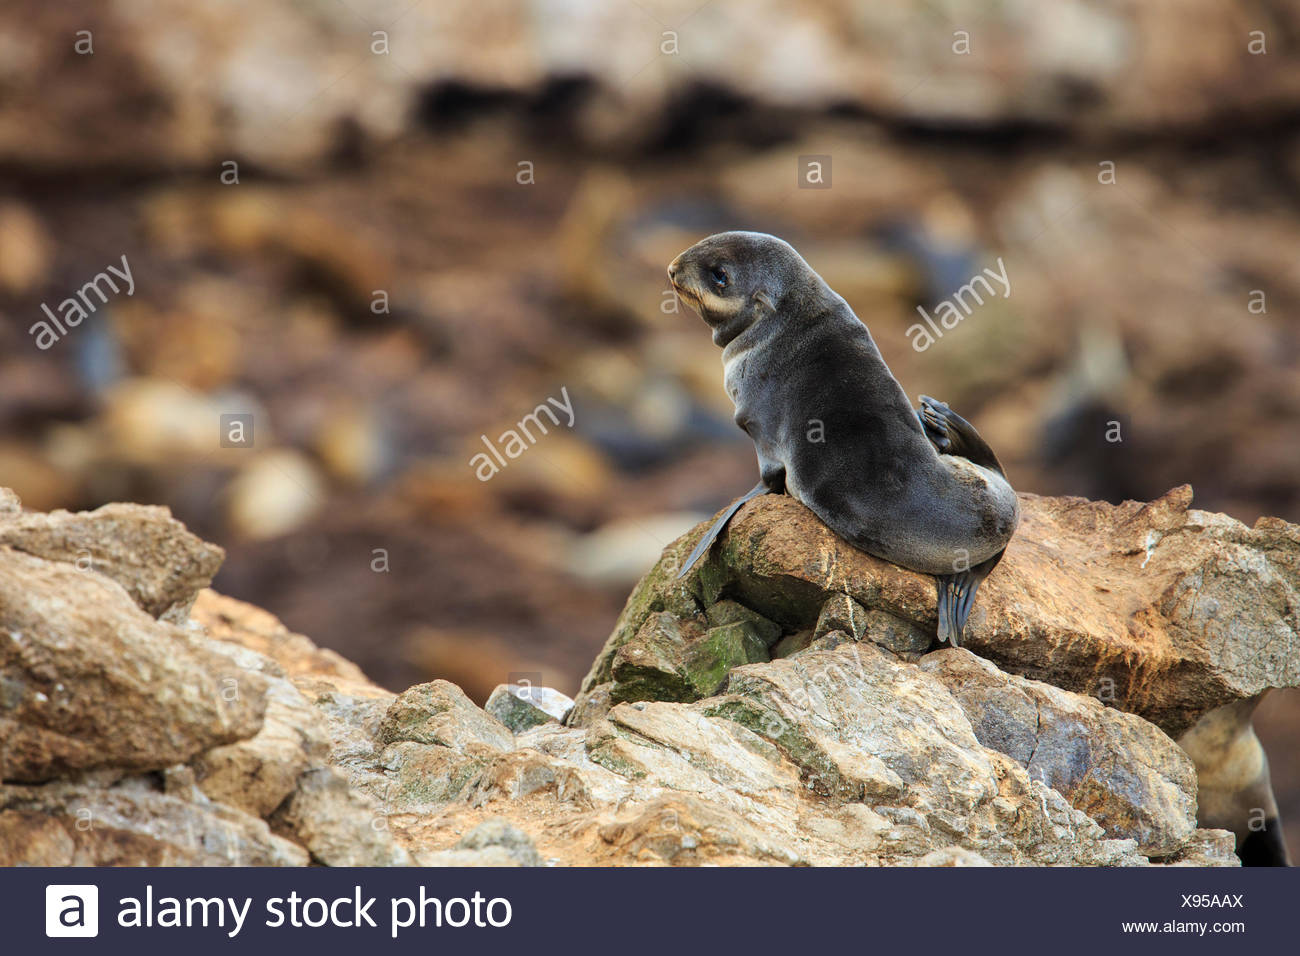 Once hunted nearly to extinction, a Northern Fur Seal pup is part of a fully recovering population on California's remote Farallon Islands. - Stock Image